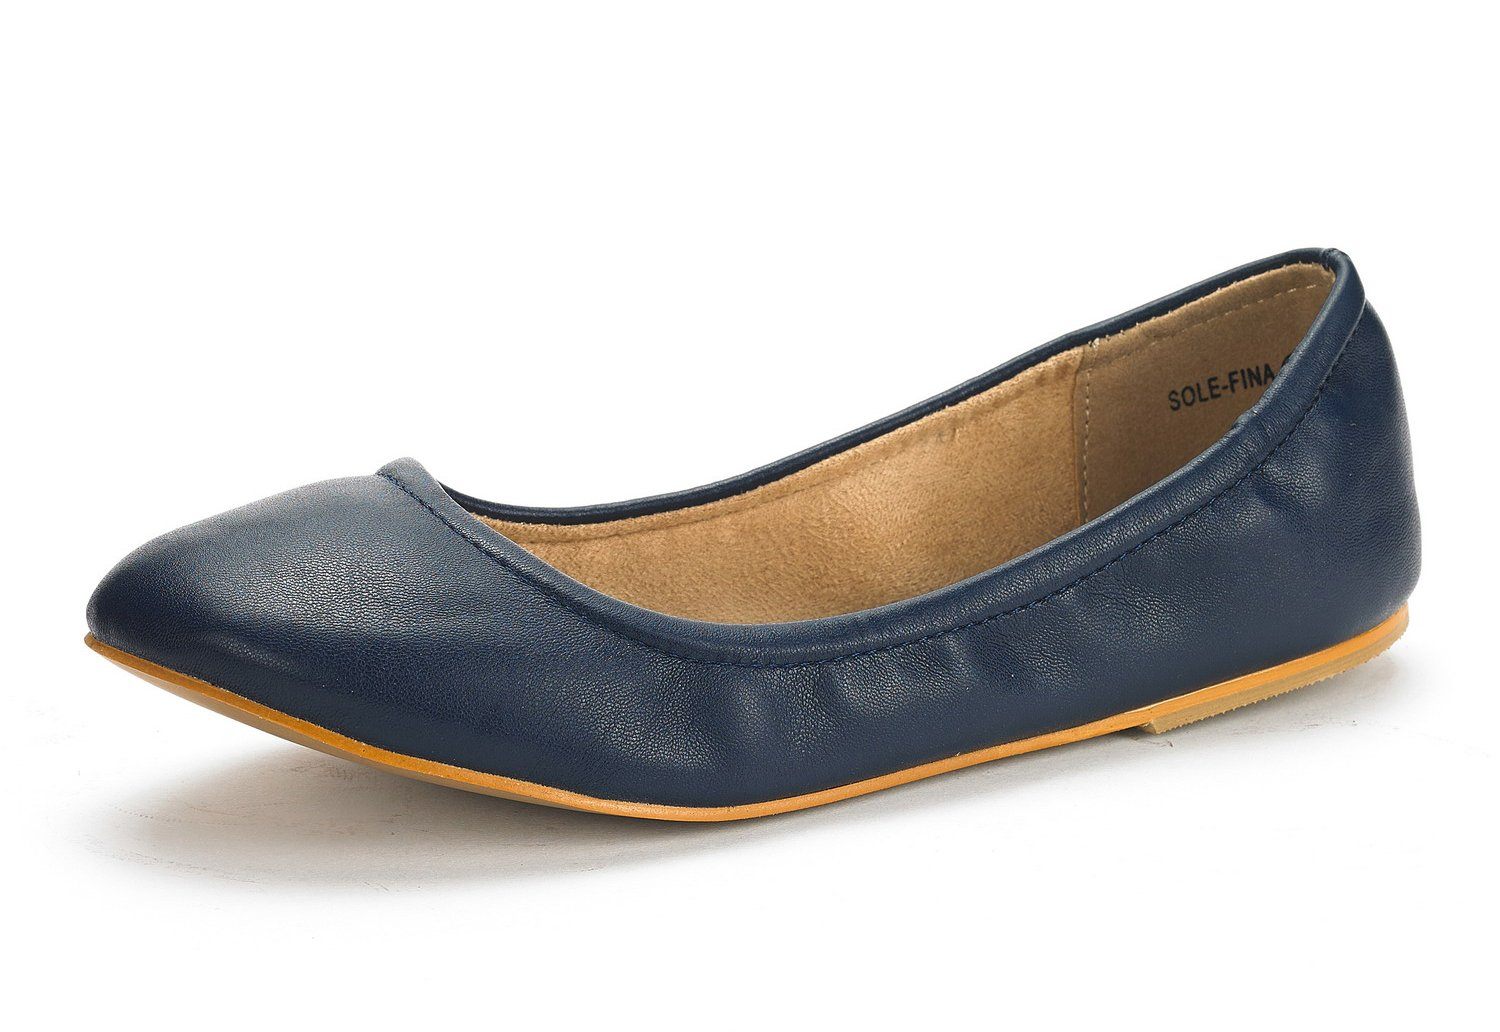 DREAM PAIRS Women's Sole-Fina Navy Solid Plain Ballet Flats Shoes - 8.5 M US